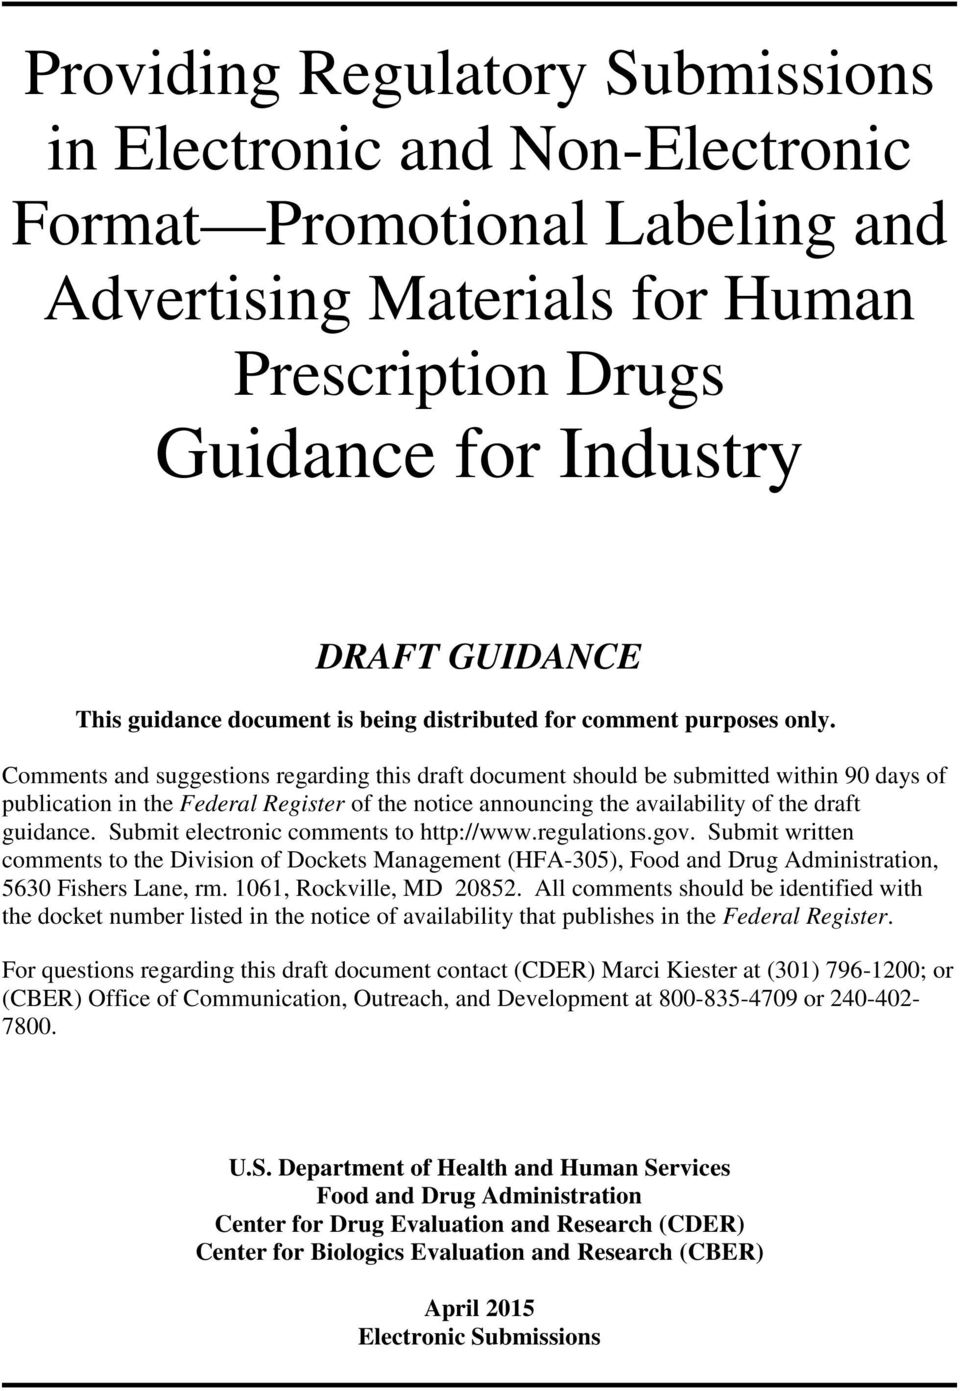 Comments and suggestions regarding this draft document should be submitted within 90 days of publication in the Federal Register of the notice announcing the availability of the draft guidance.